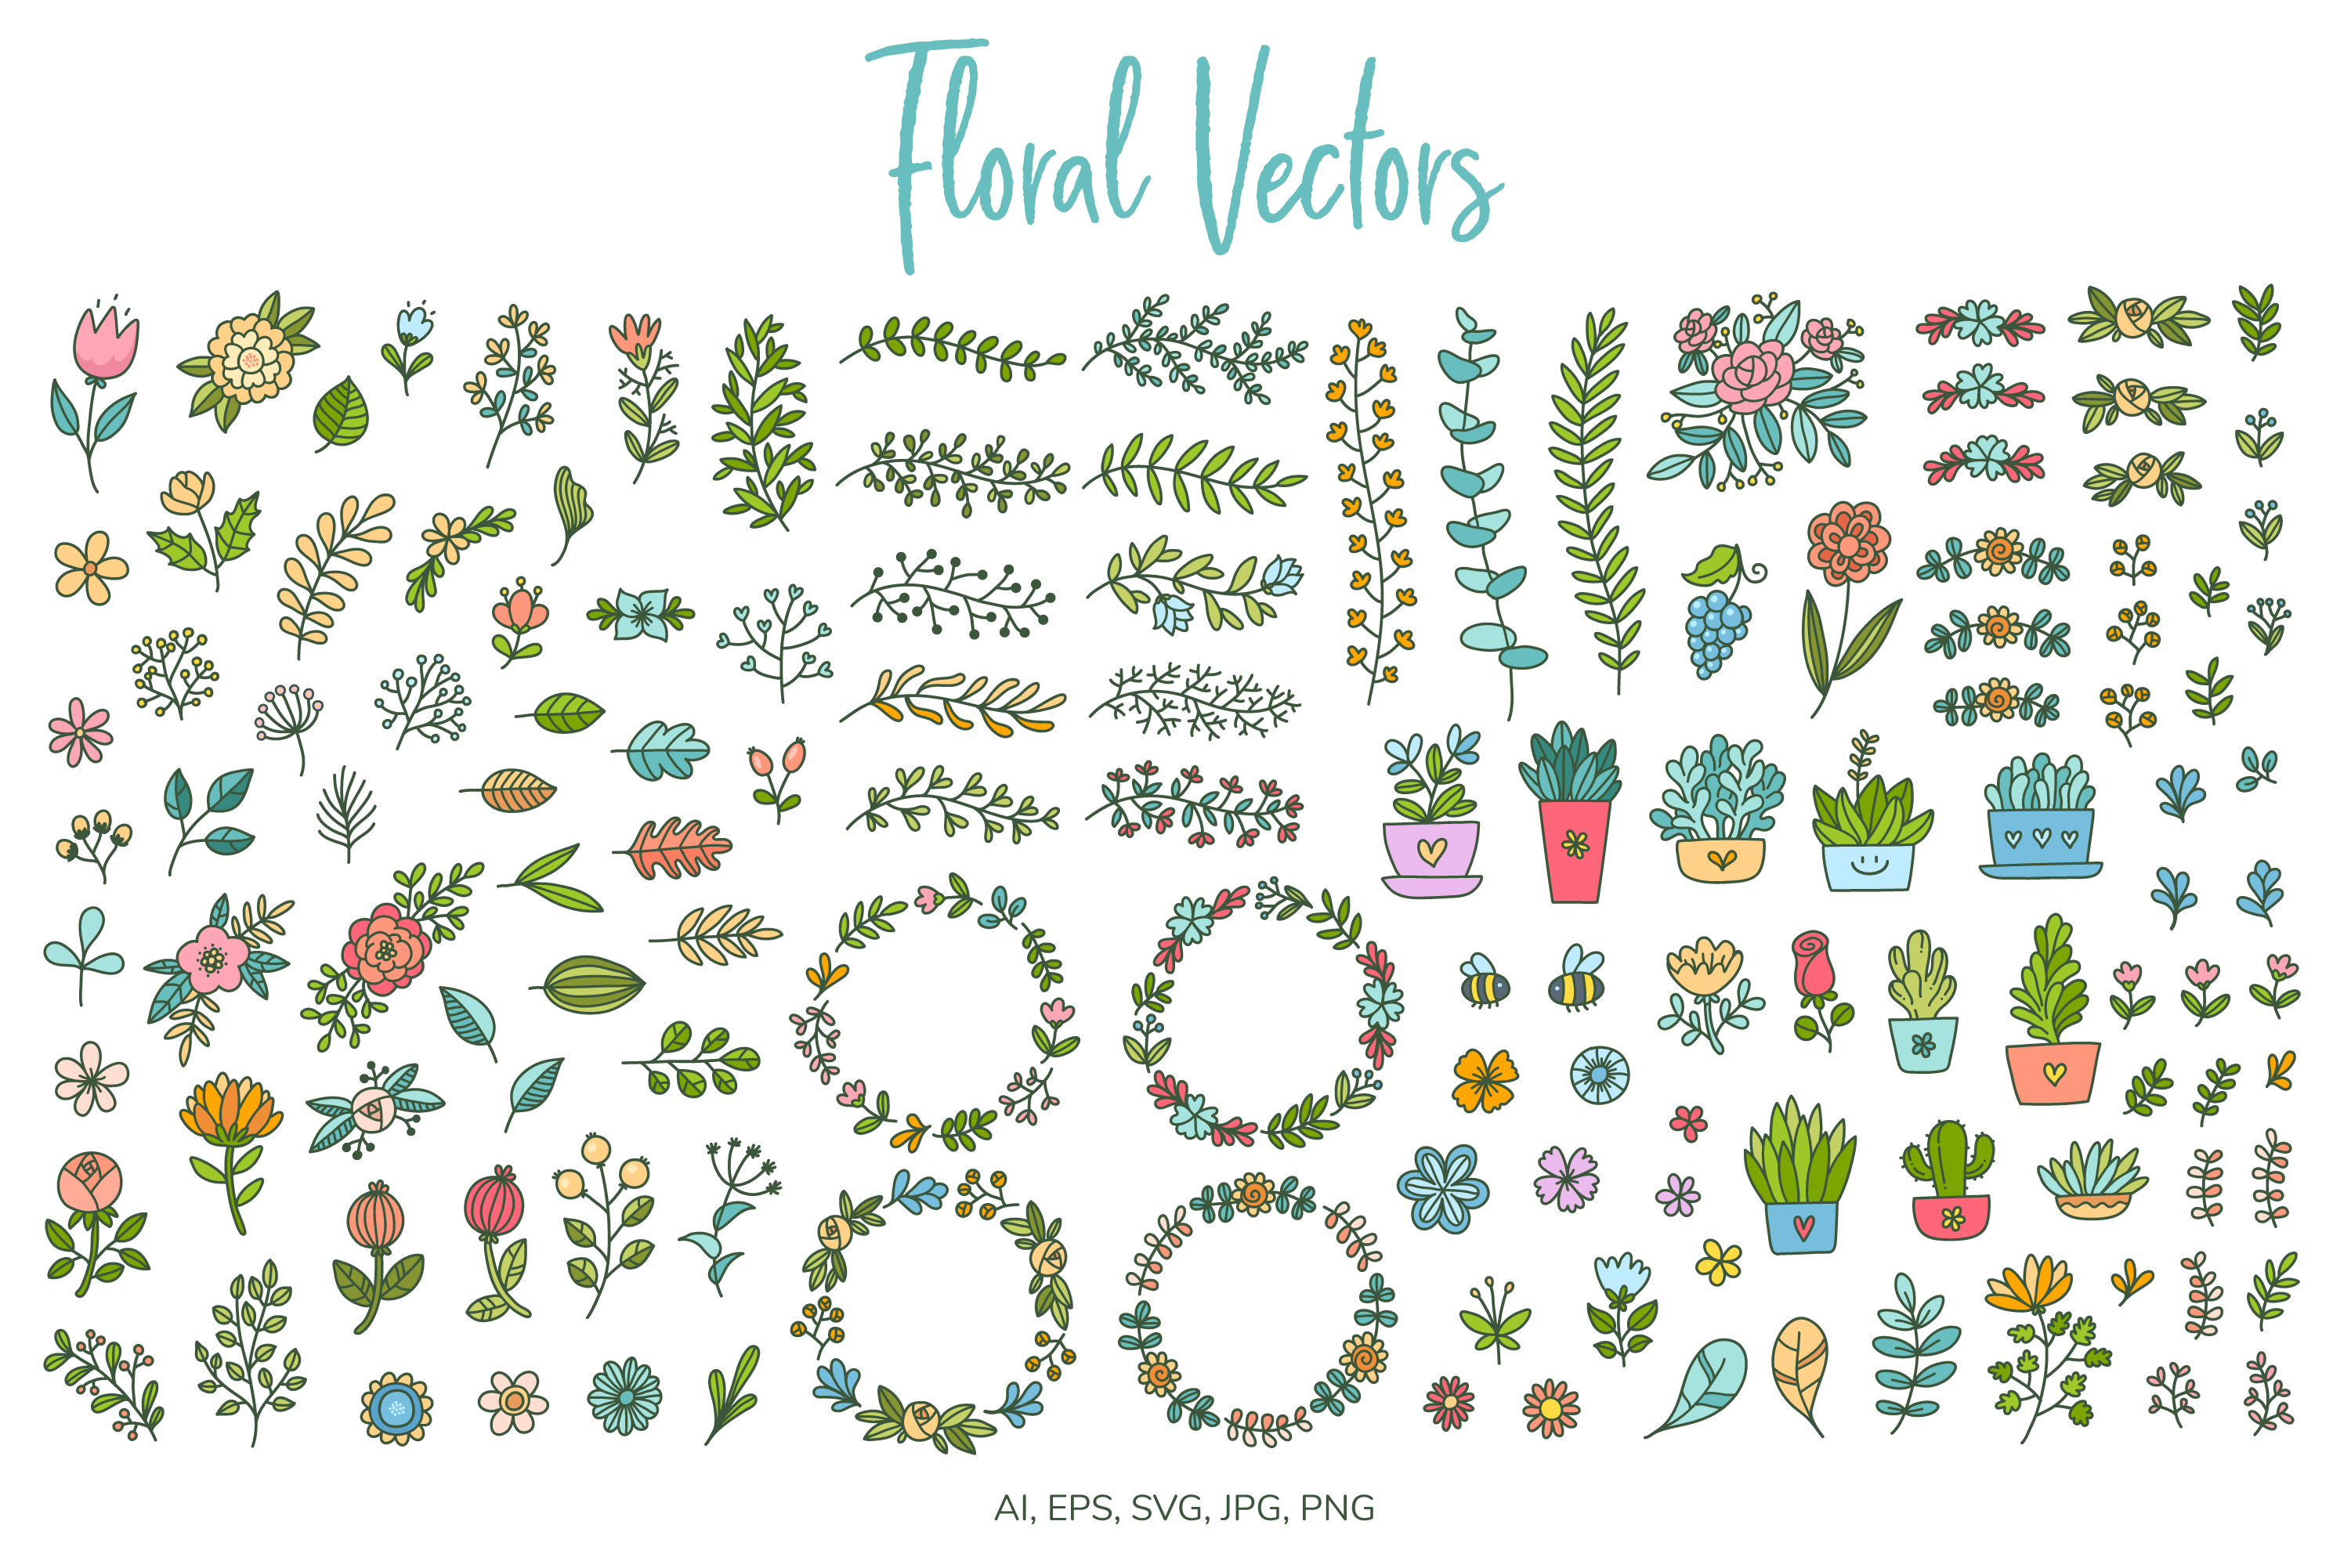 HUGE - Hand Drawn Floral Vectors and Patterns example image 2